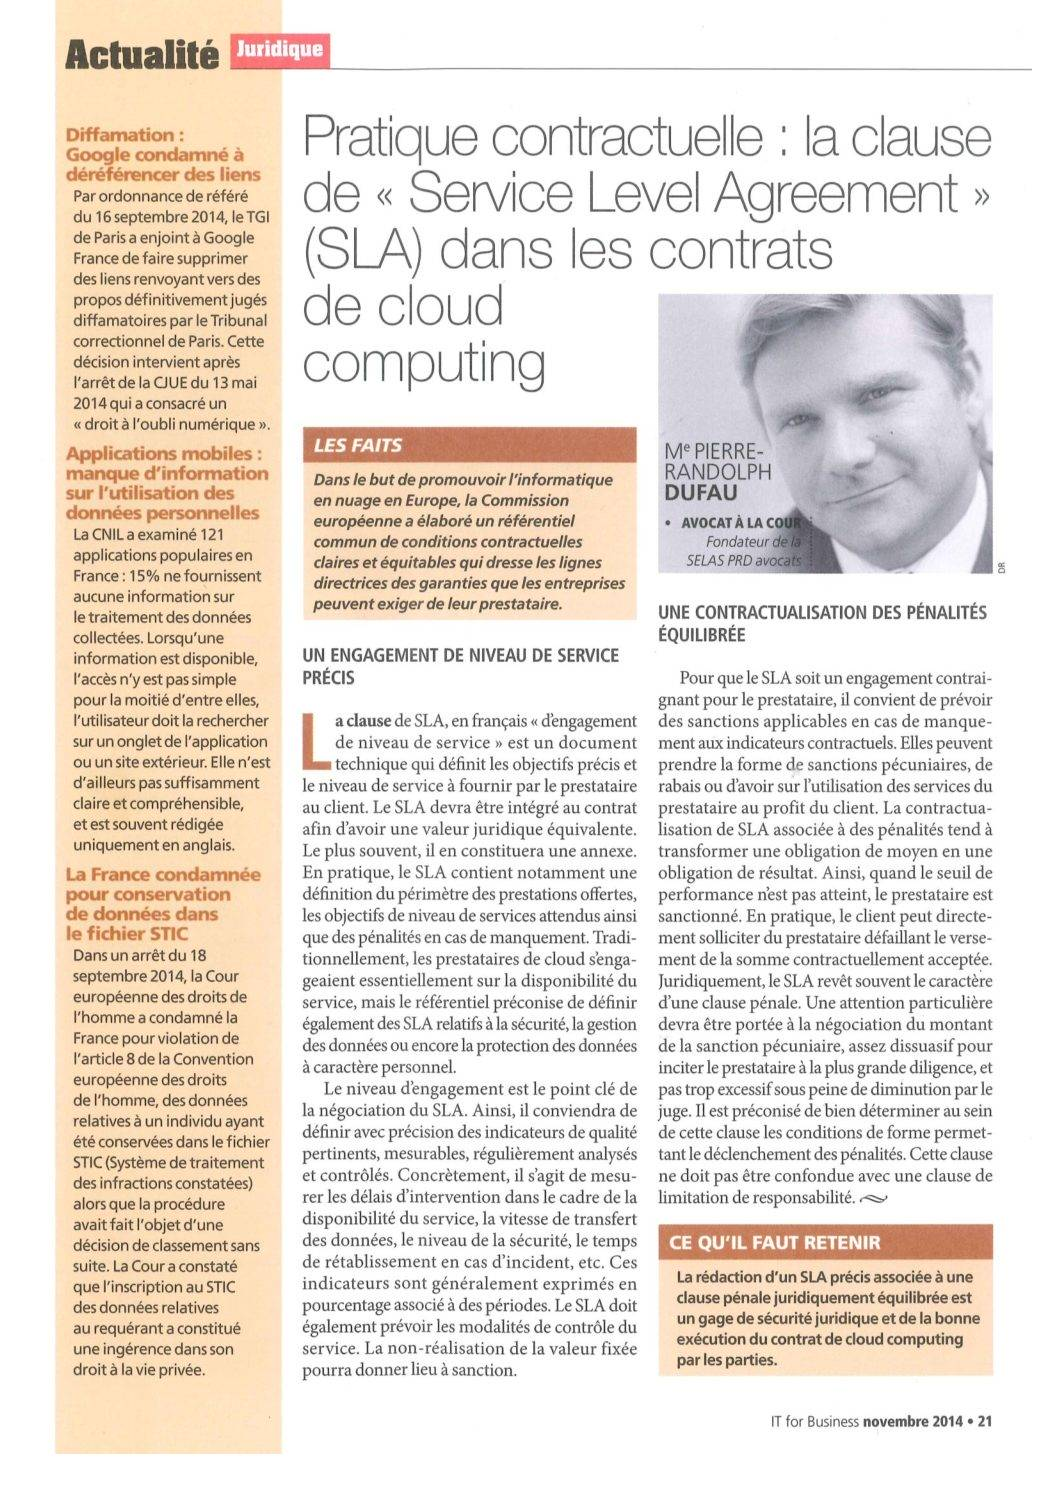 """Contractual practice: the """"Service Level Agreement"""" clause in cloud computing contracts"""